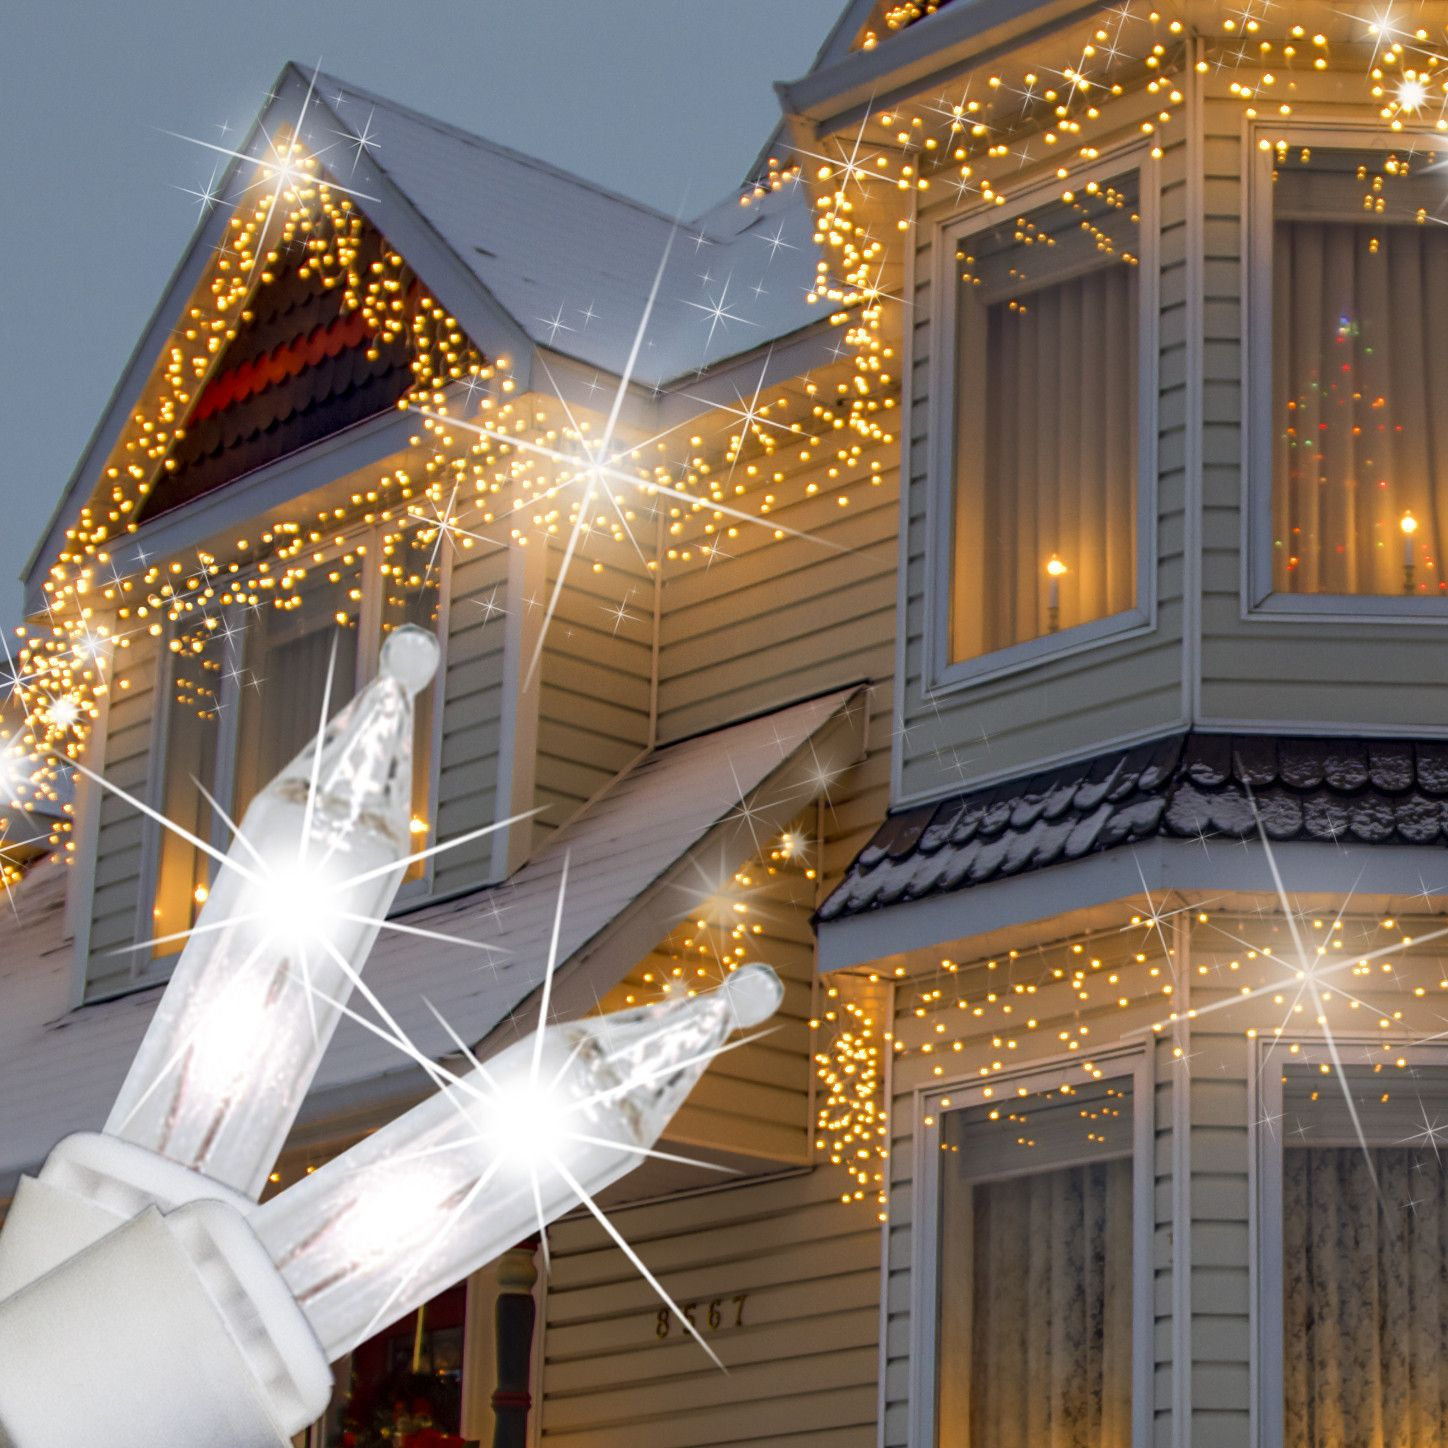 150 Clear Twinkle Icicle Lights White Wire 14 99 Icicle Lights Icicle Christmas Lights White Wire Christmas Lights